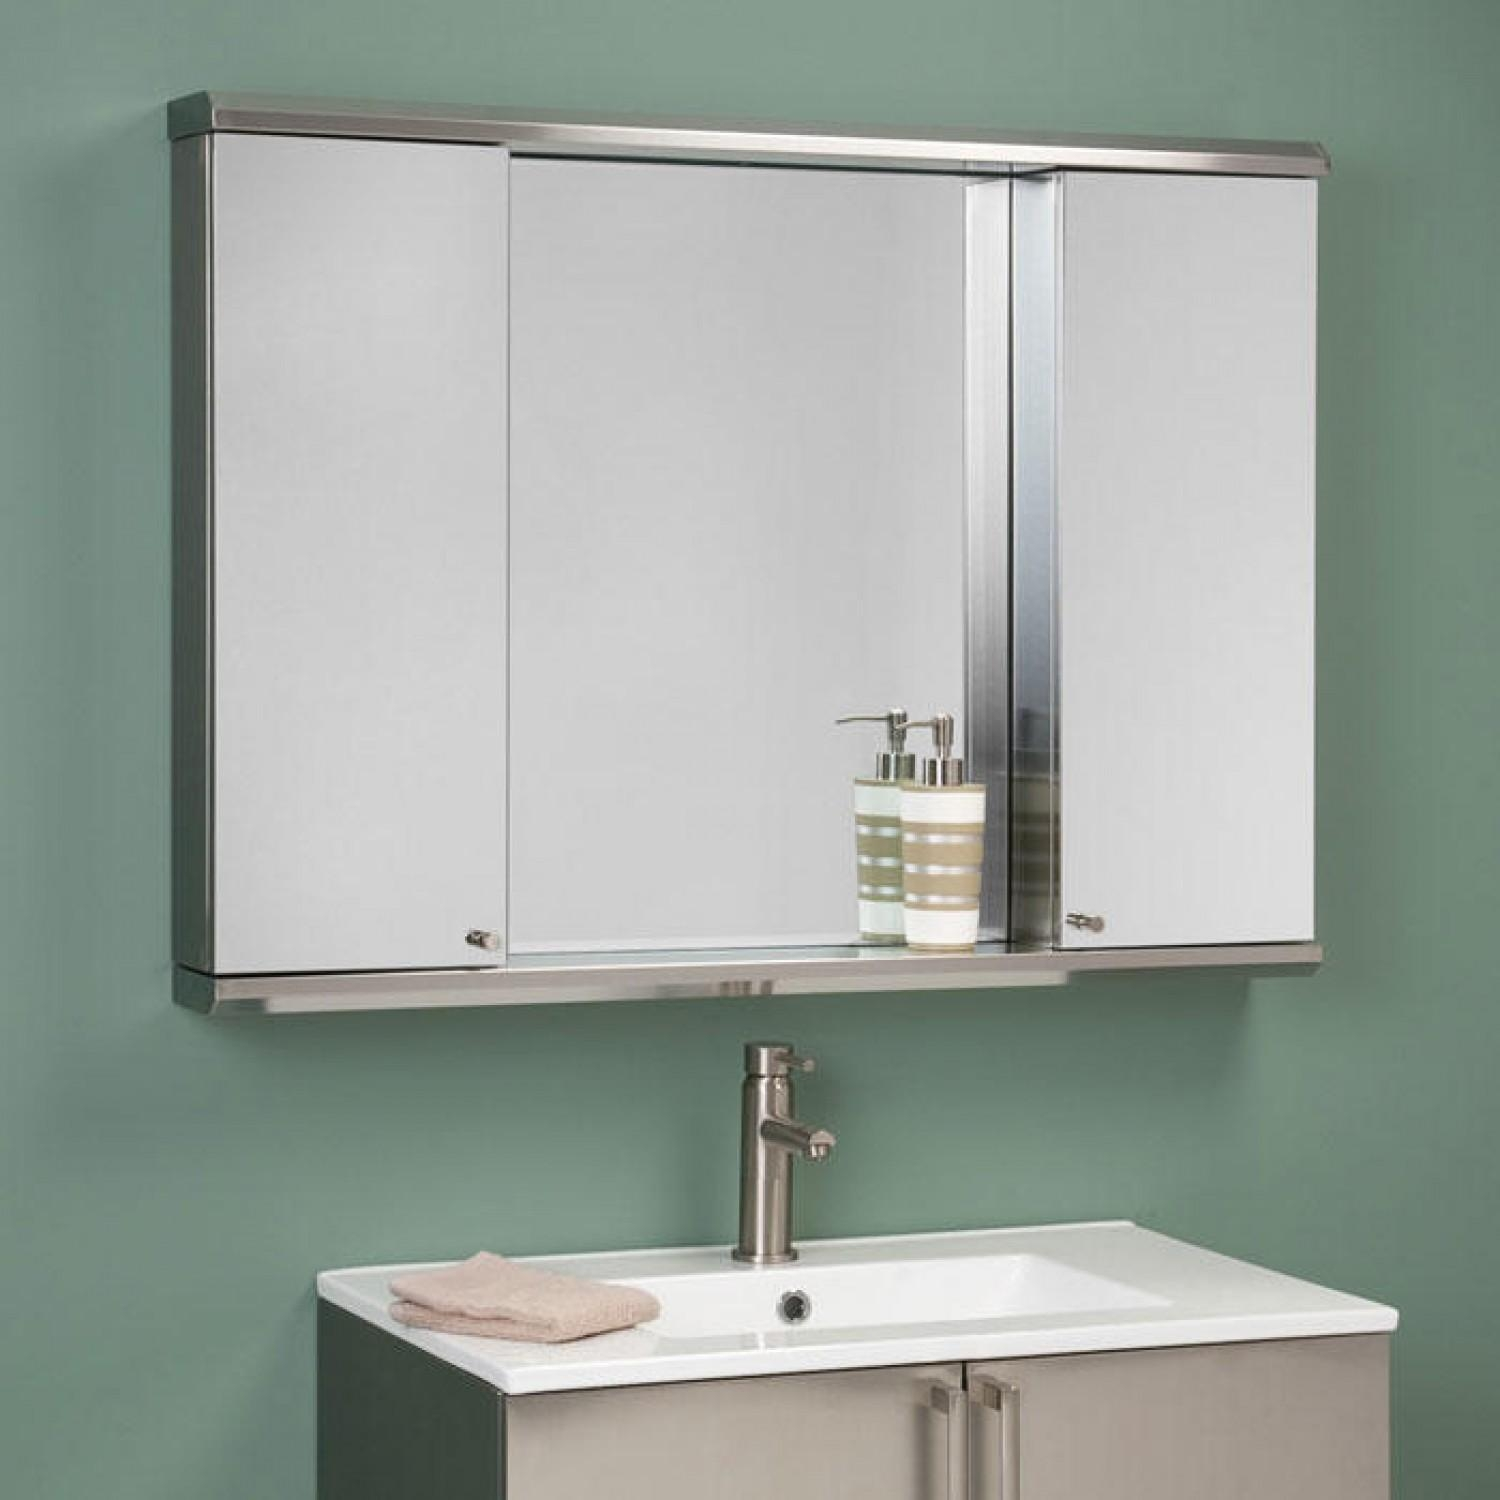 Metropolitan Dual Stainless Steel Medicine Cabinets – Bathroom With Regard To Bathroom Medicine Cabinets And Mirrors (Image 19 of 20)